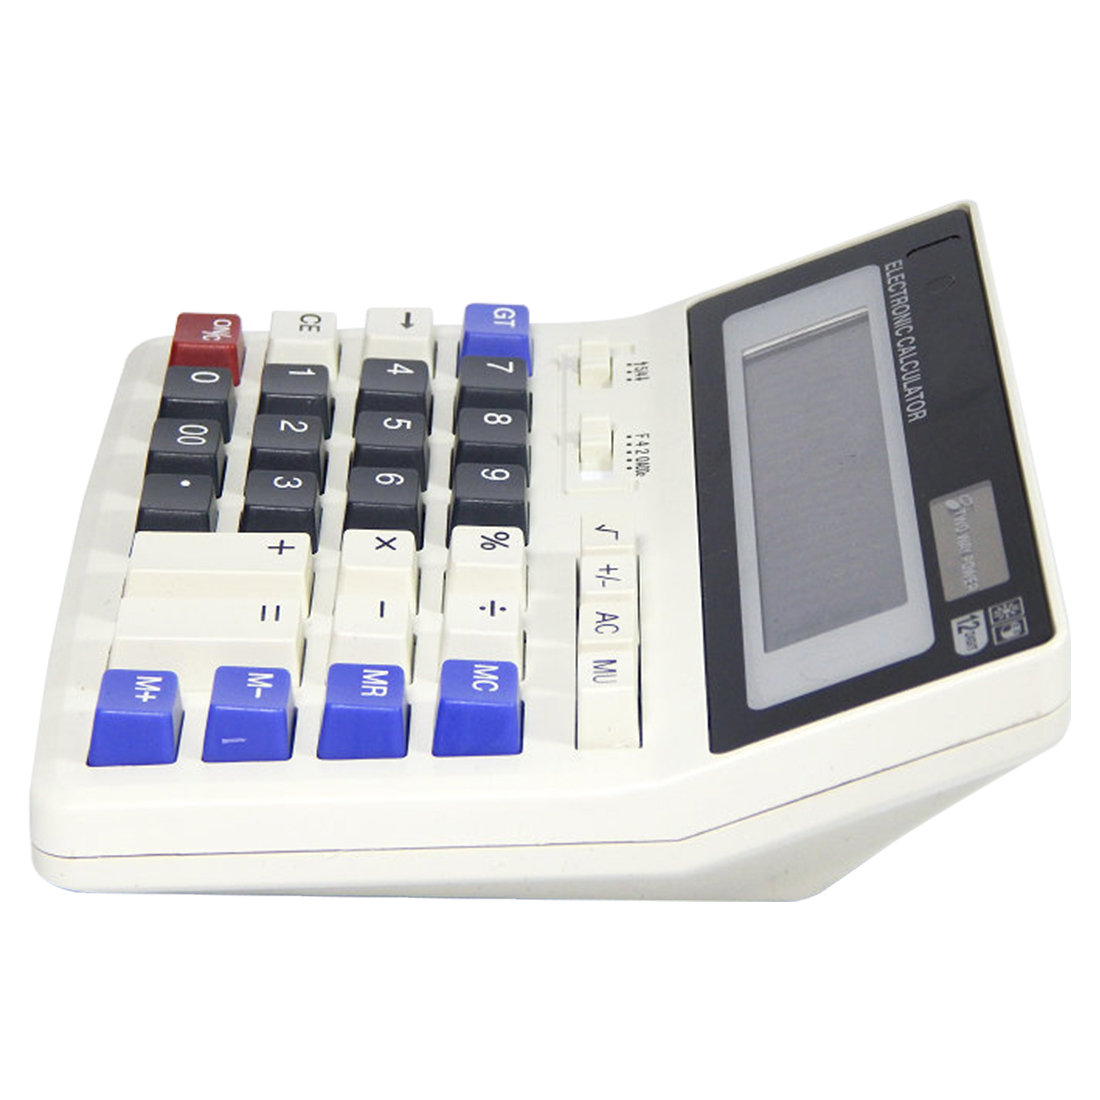 Etmakit  Big Buttons Office Calculator Large Computer Keys Muti-function Computer Battery Calculator Top Quallity